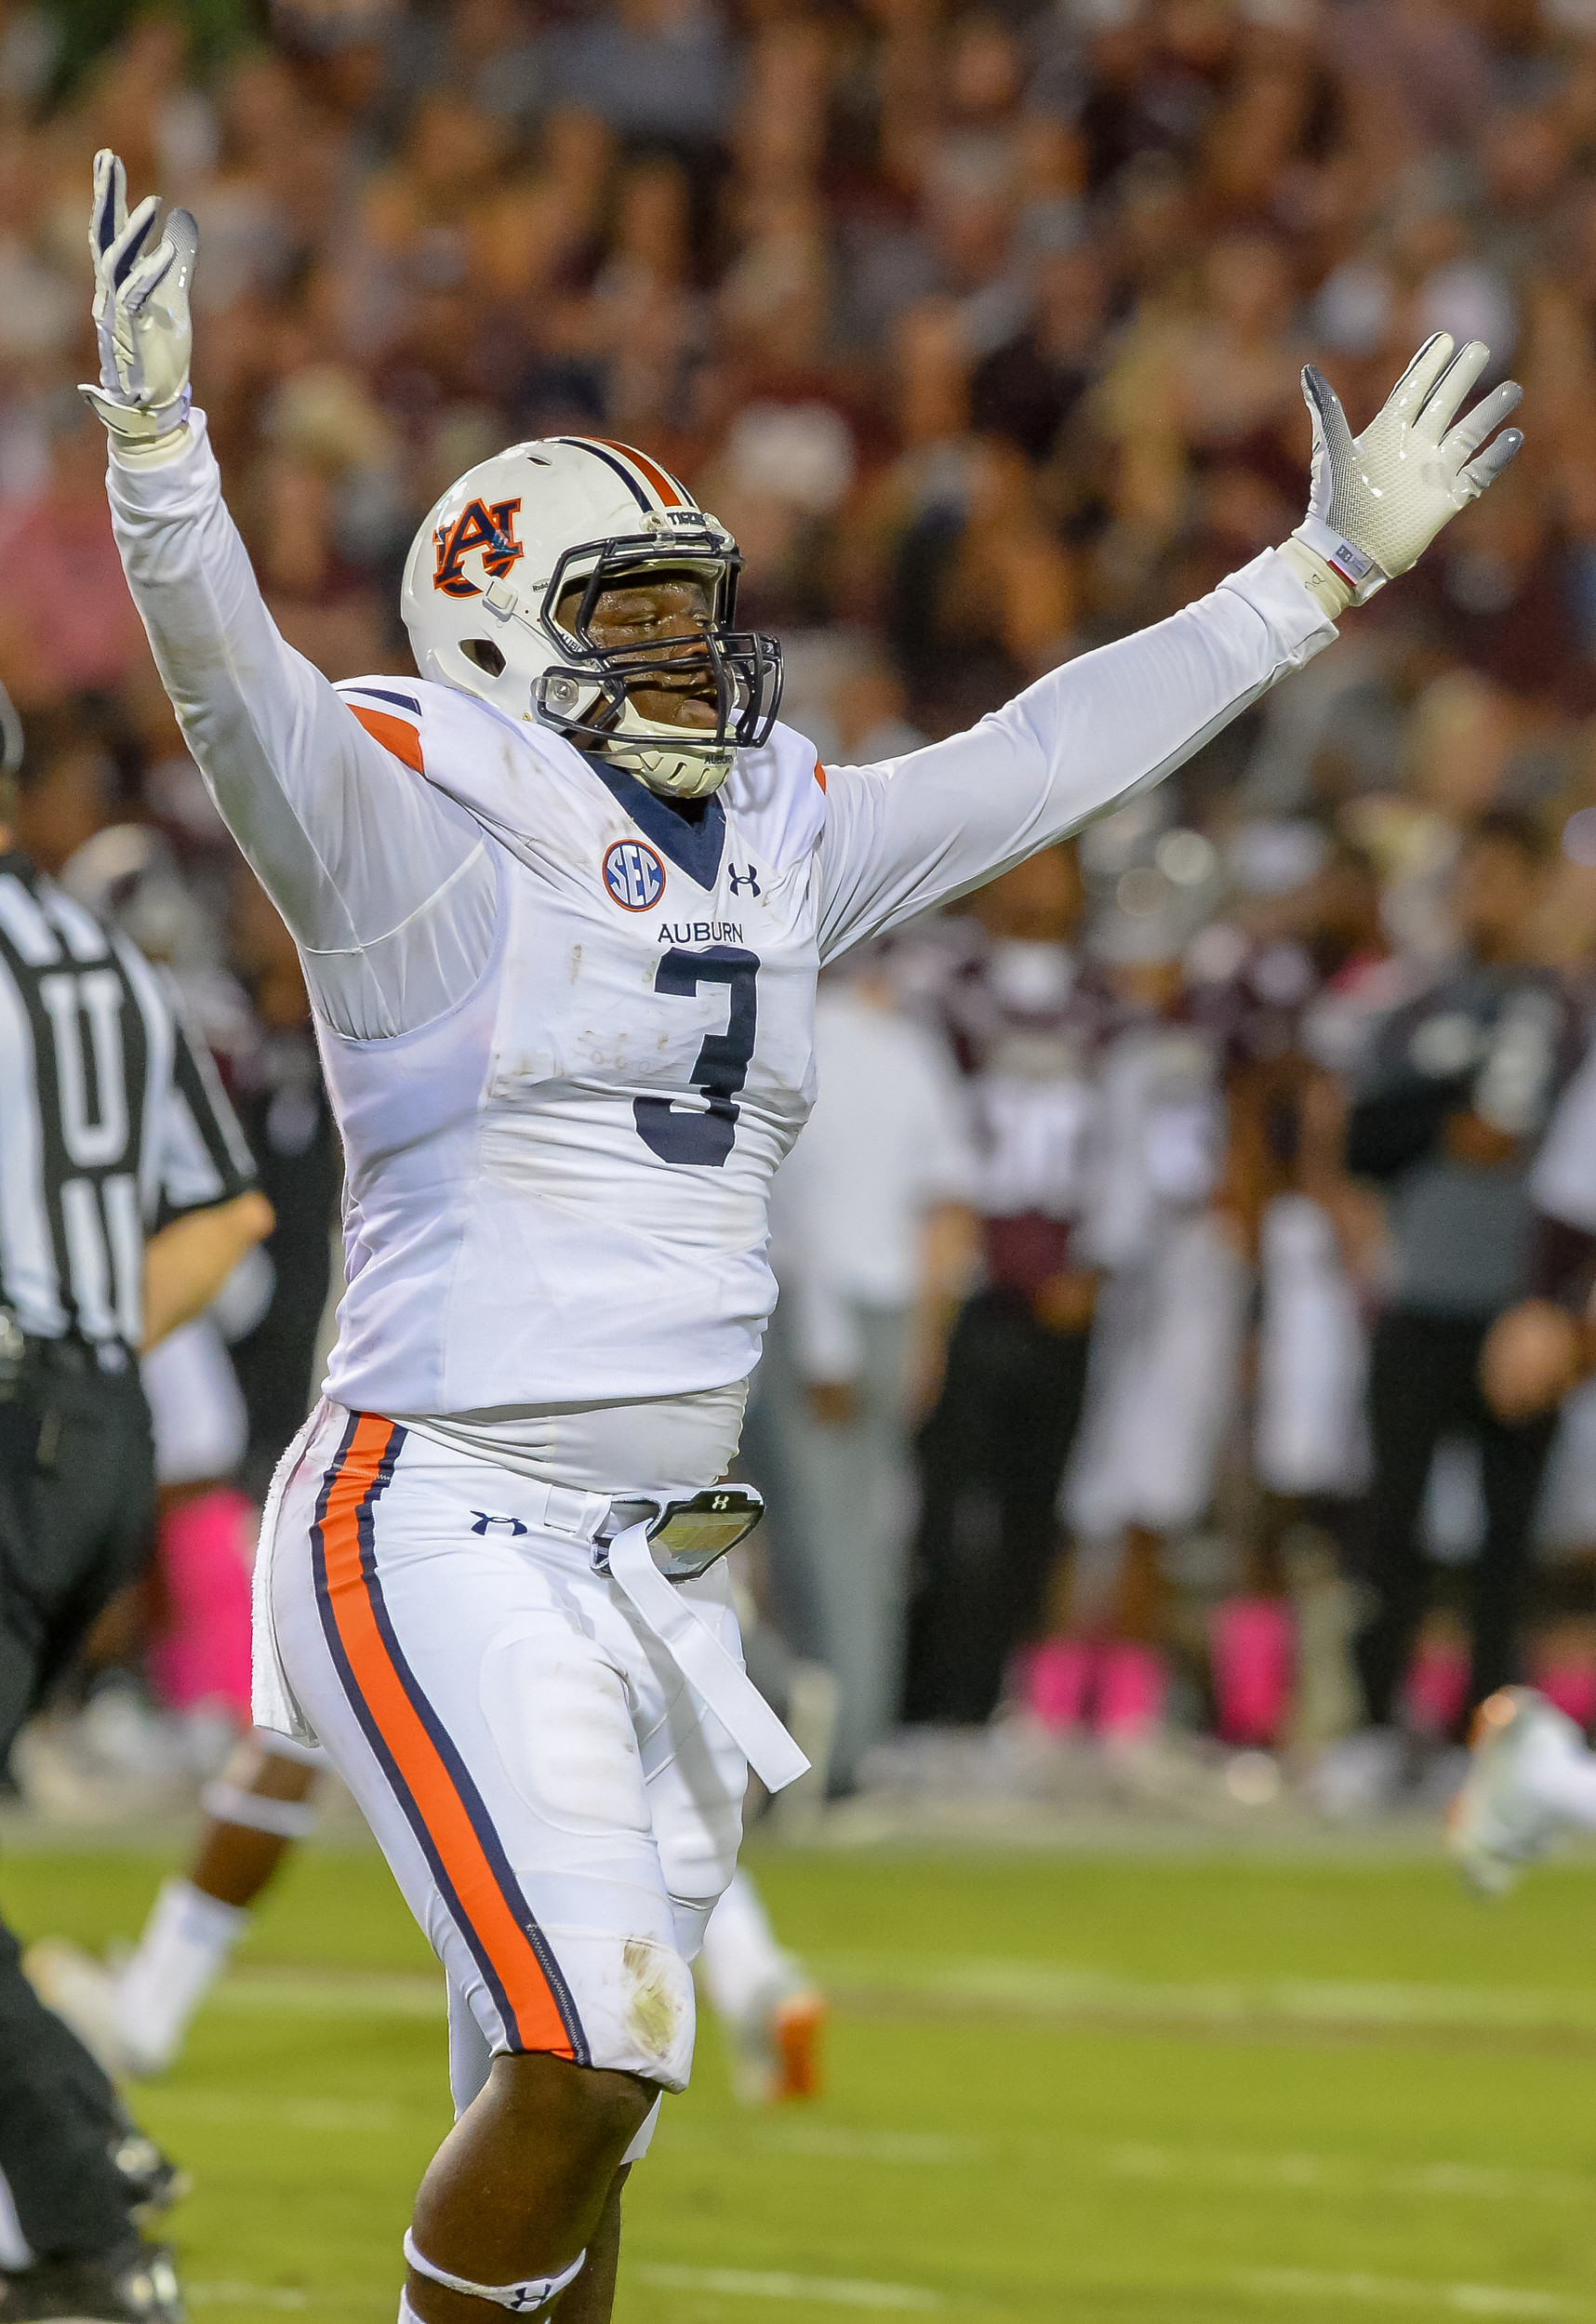 Auburn Tigers defensive lineman Marlon Davidson (3) celebrates after a turnover during the first half of Saturday's game, at Davis Wade Stadium in Starkville, MS. Daily Mountain Eagle -  Jeff Johnsey